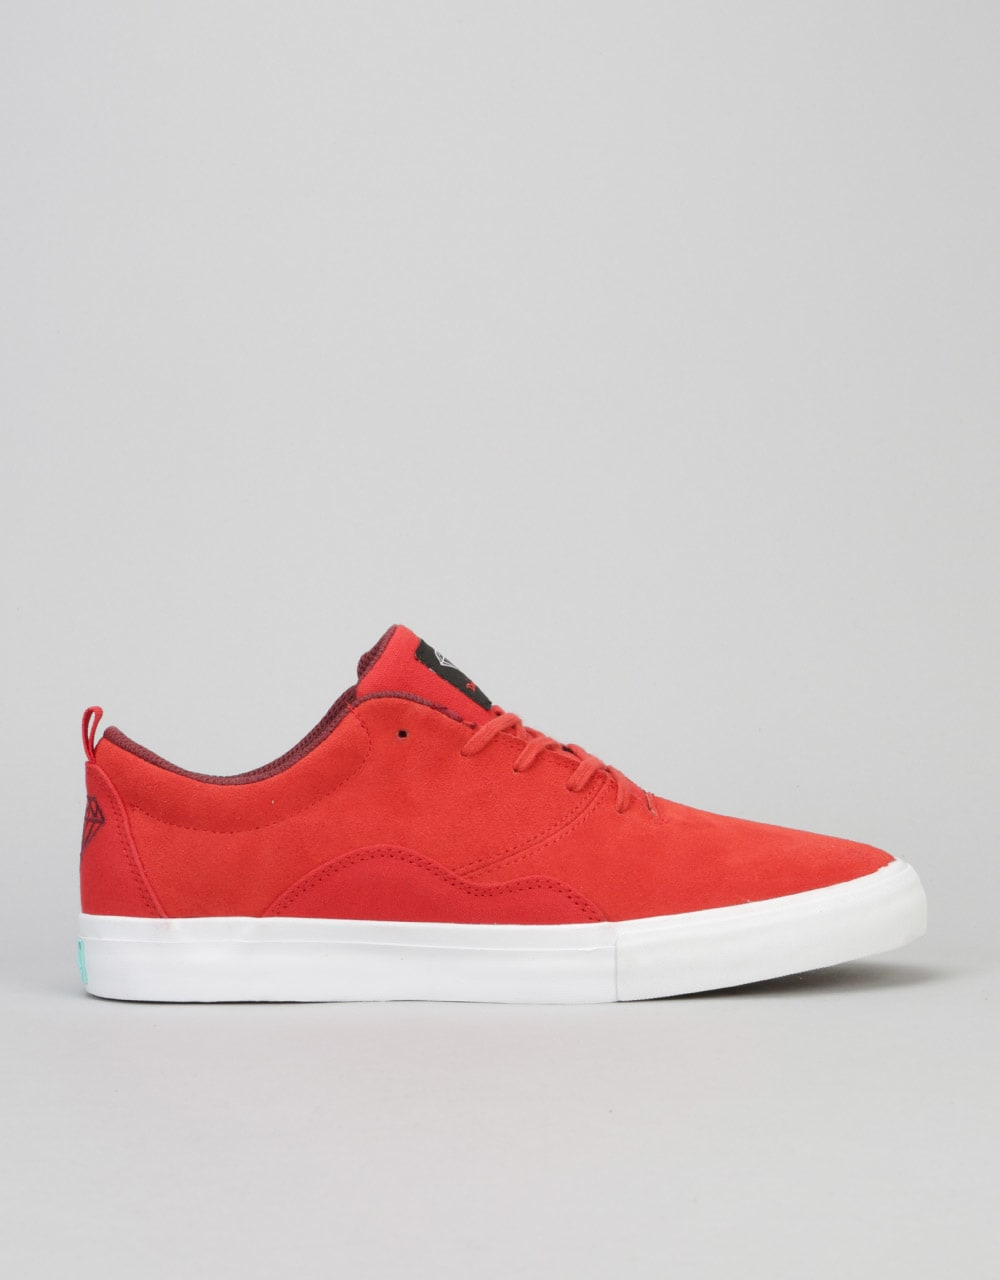 8dfd248f11 Diamond Supply Co. Lafayette Skate Shoes - Red Suede